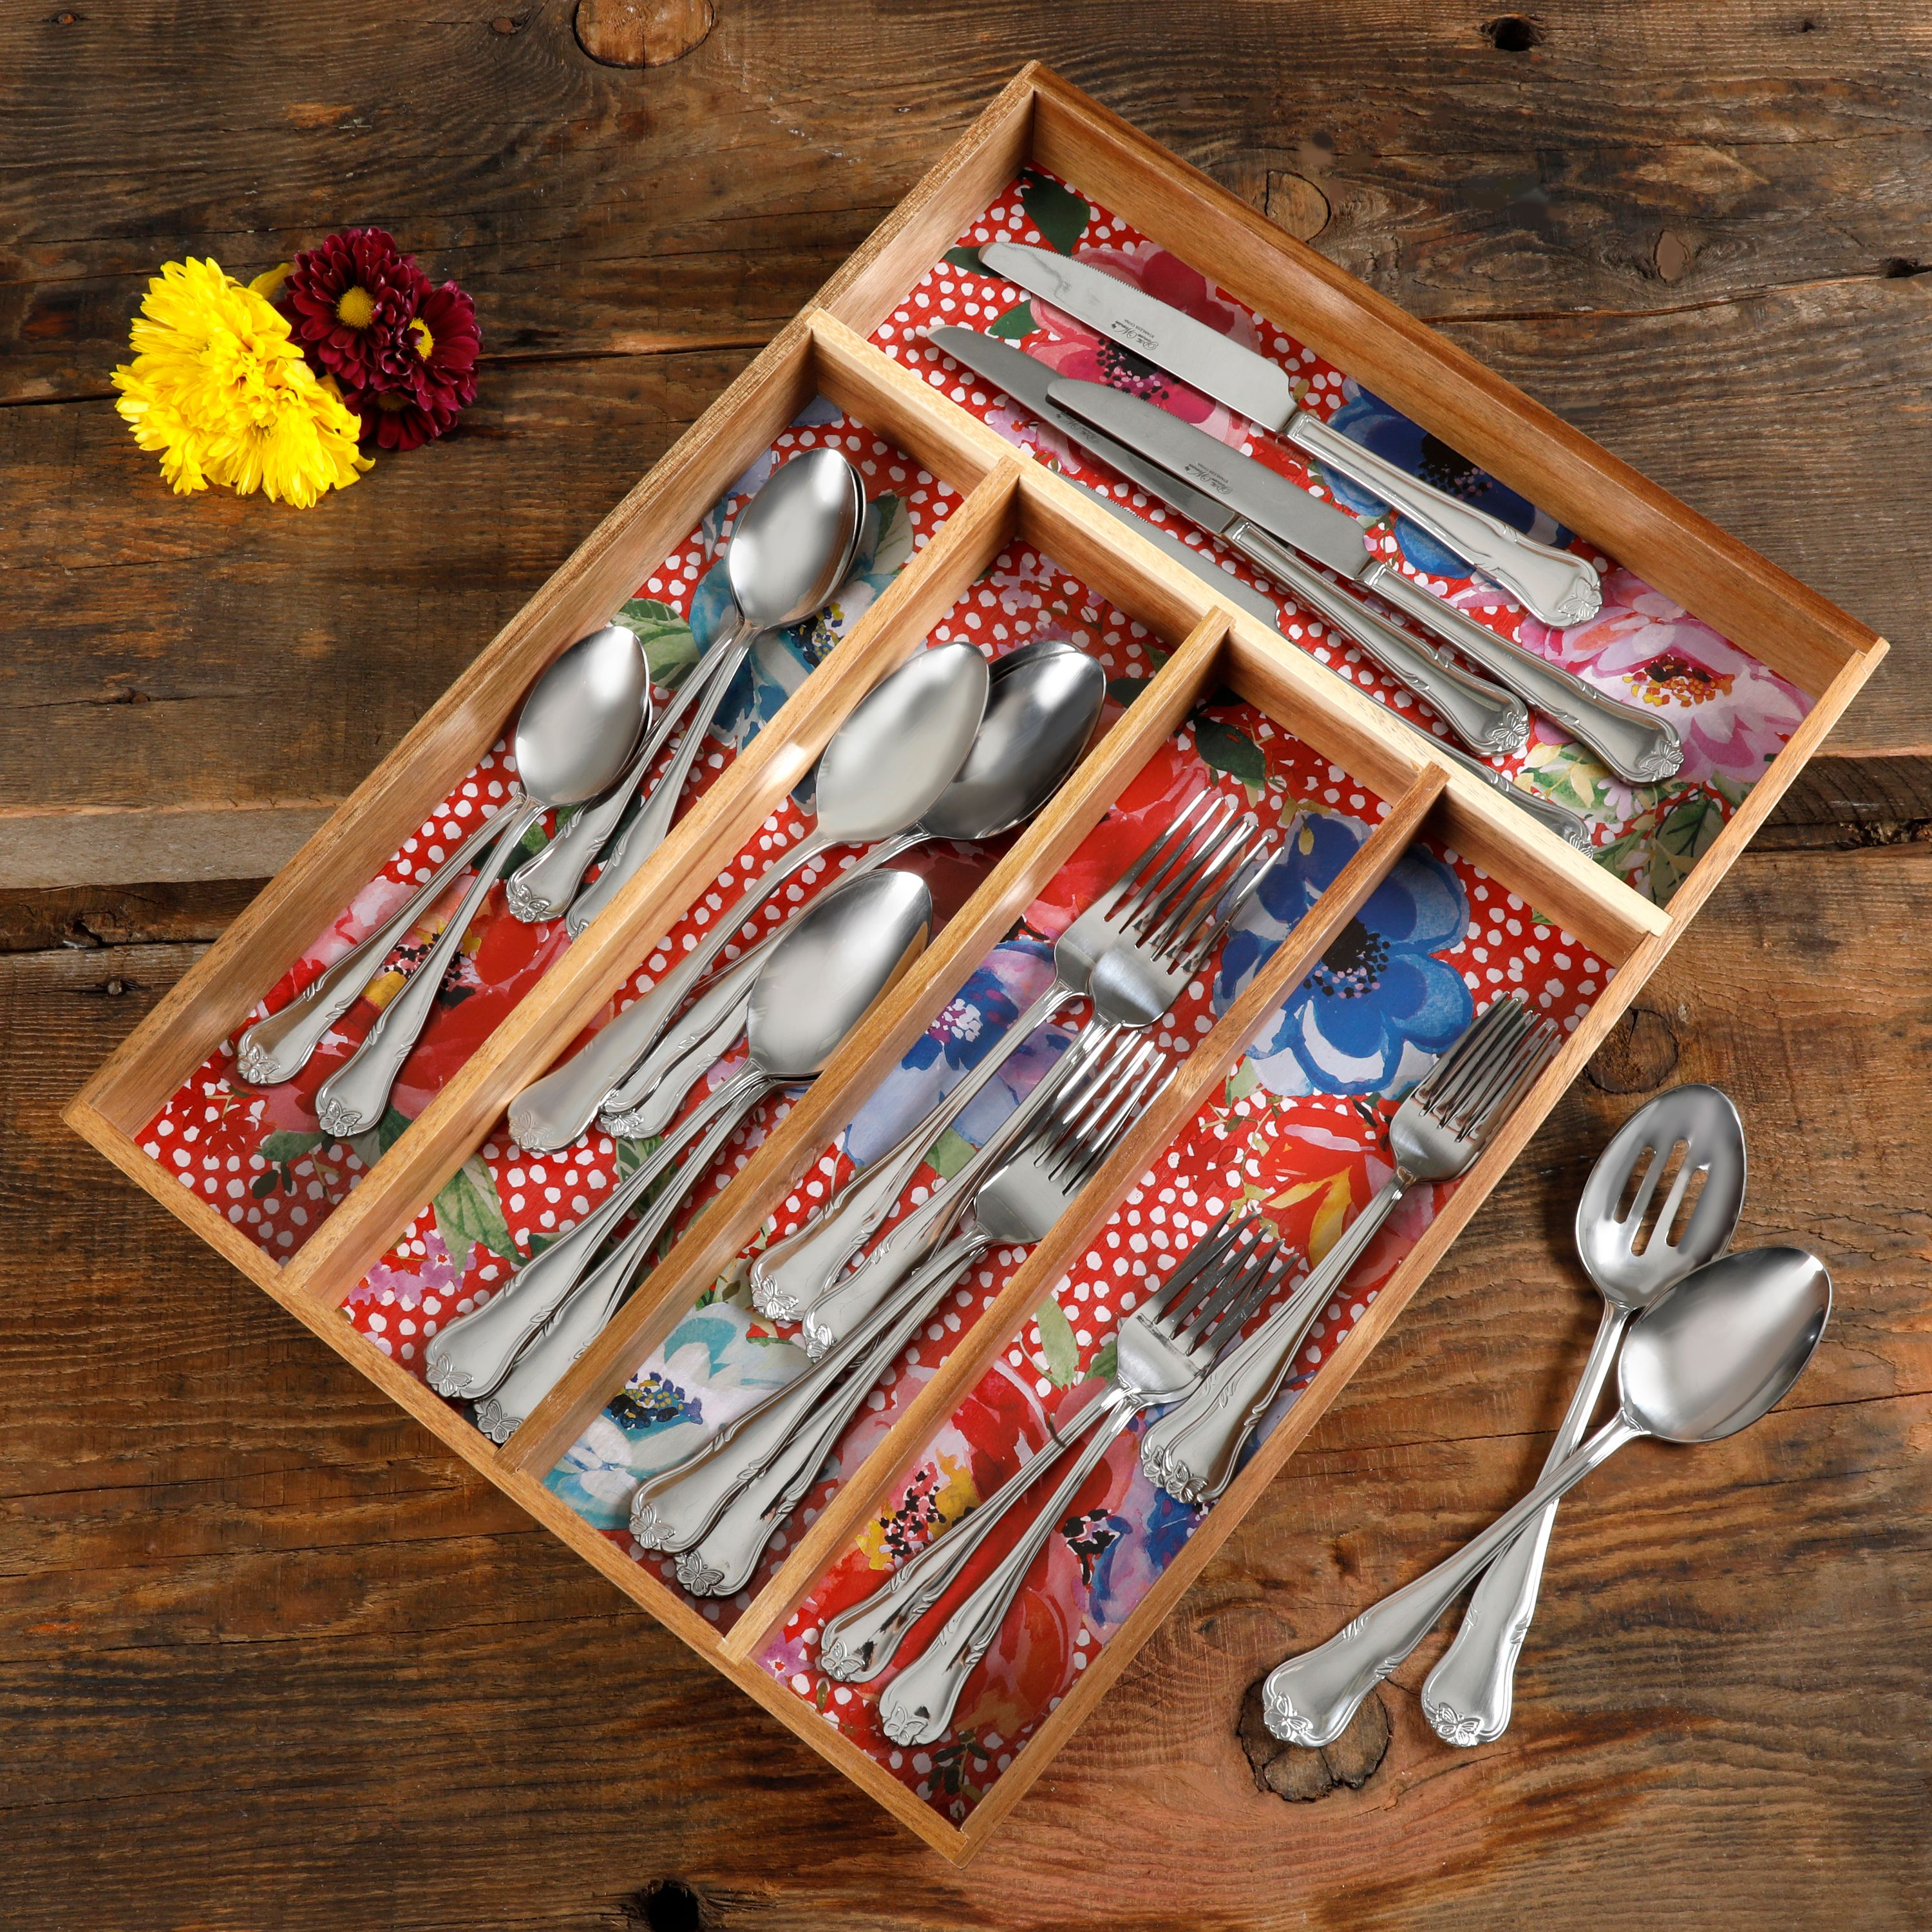 The Pioneer Woman Melody 5-Section Cutlery Tray